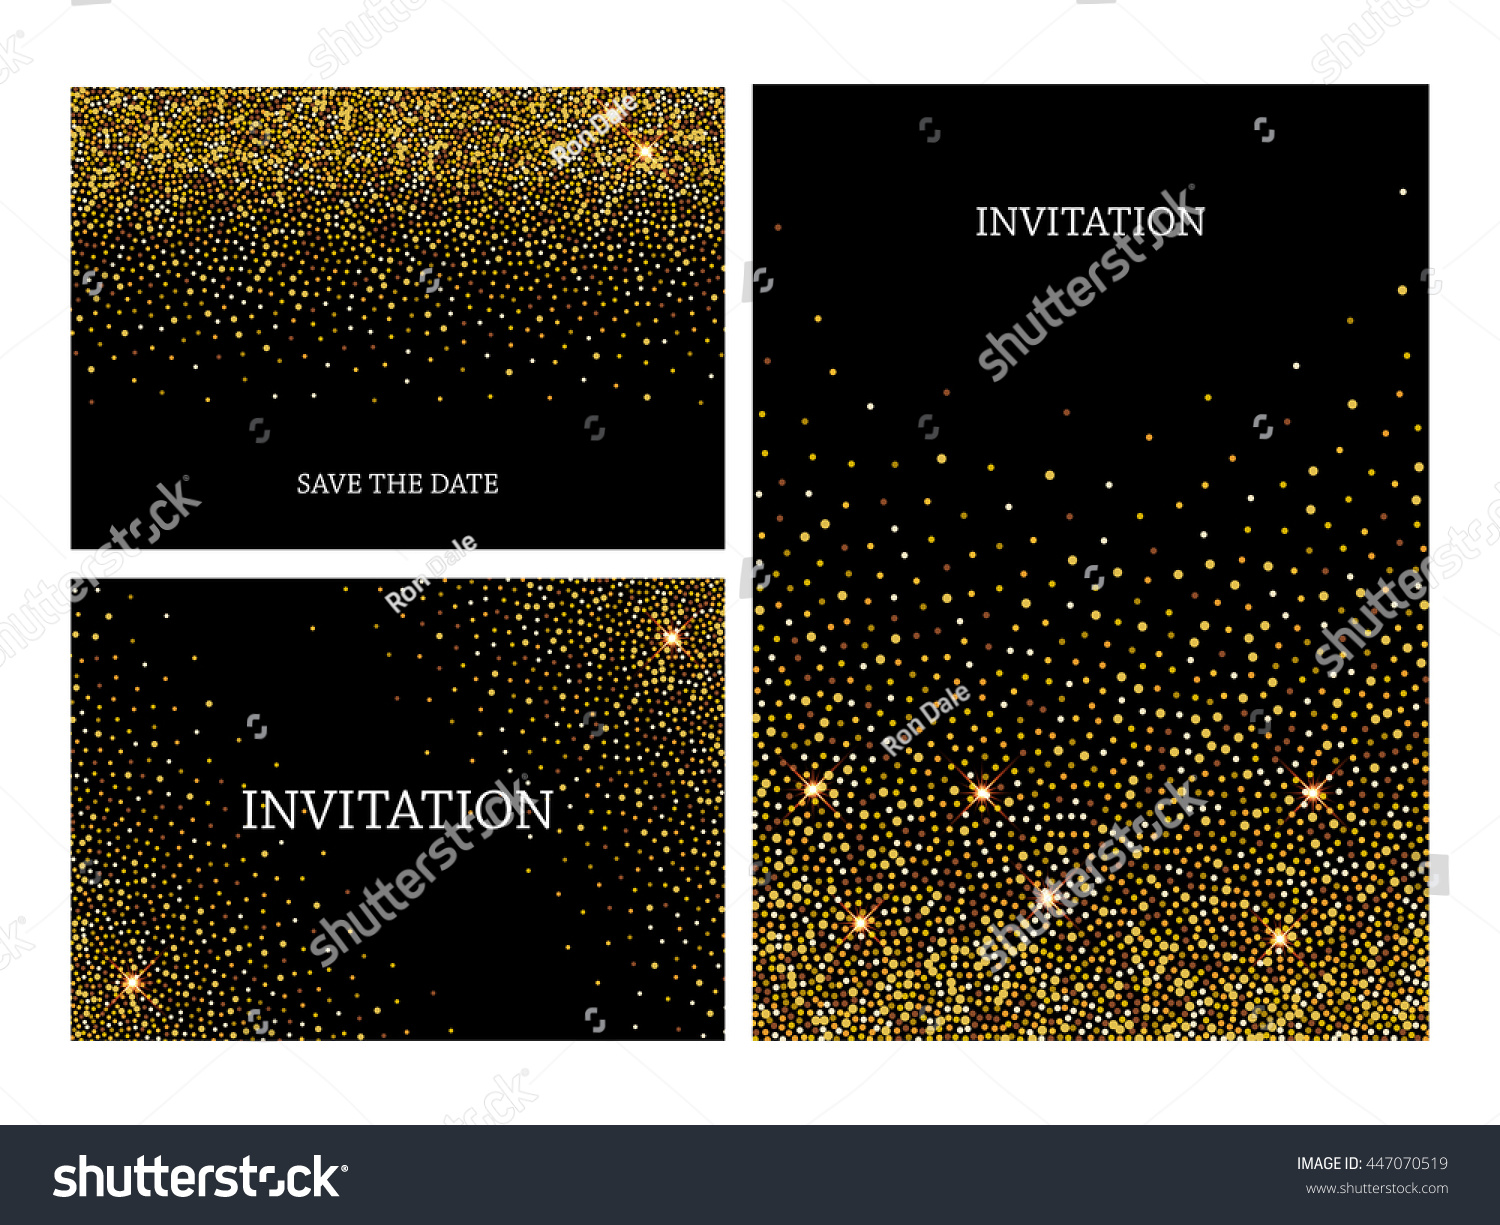 Vip Invitation Letter Template on vip label templates, all access pass template, realtor template, vip certificate template, vip party template, vip letter template, birthday ticket invitations template, vip business card template, vip sign template, vip background template, vip envelope template, vip flyer template, vip tag template, vip ticket samples,